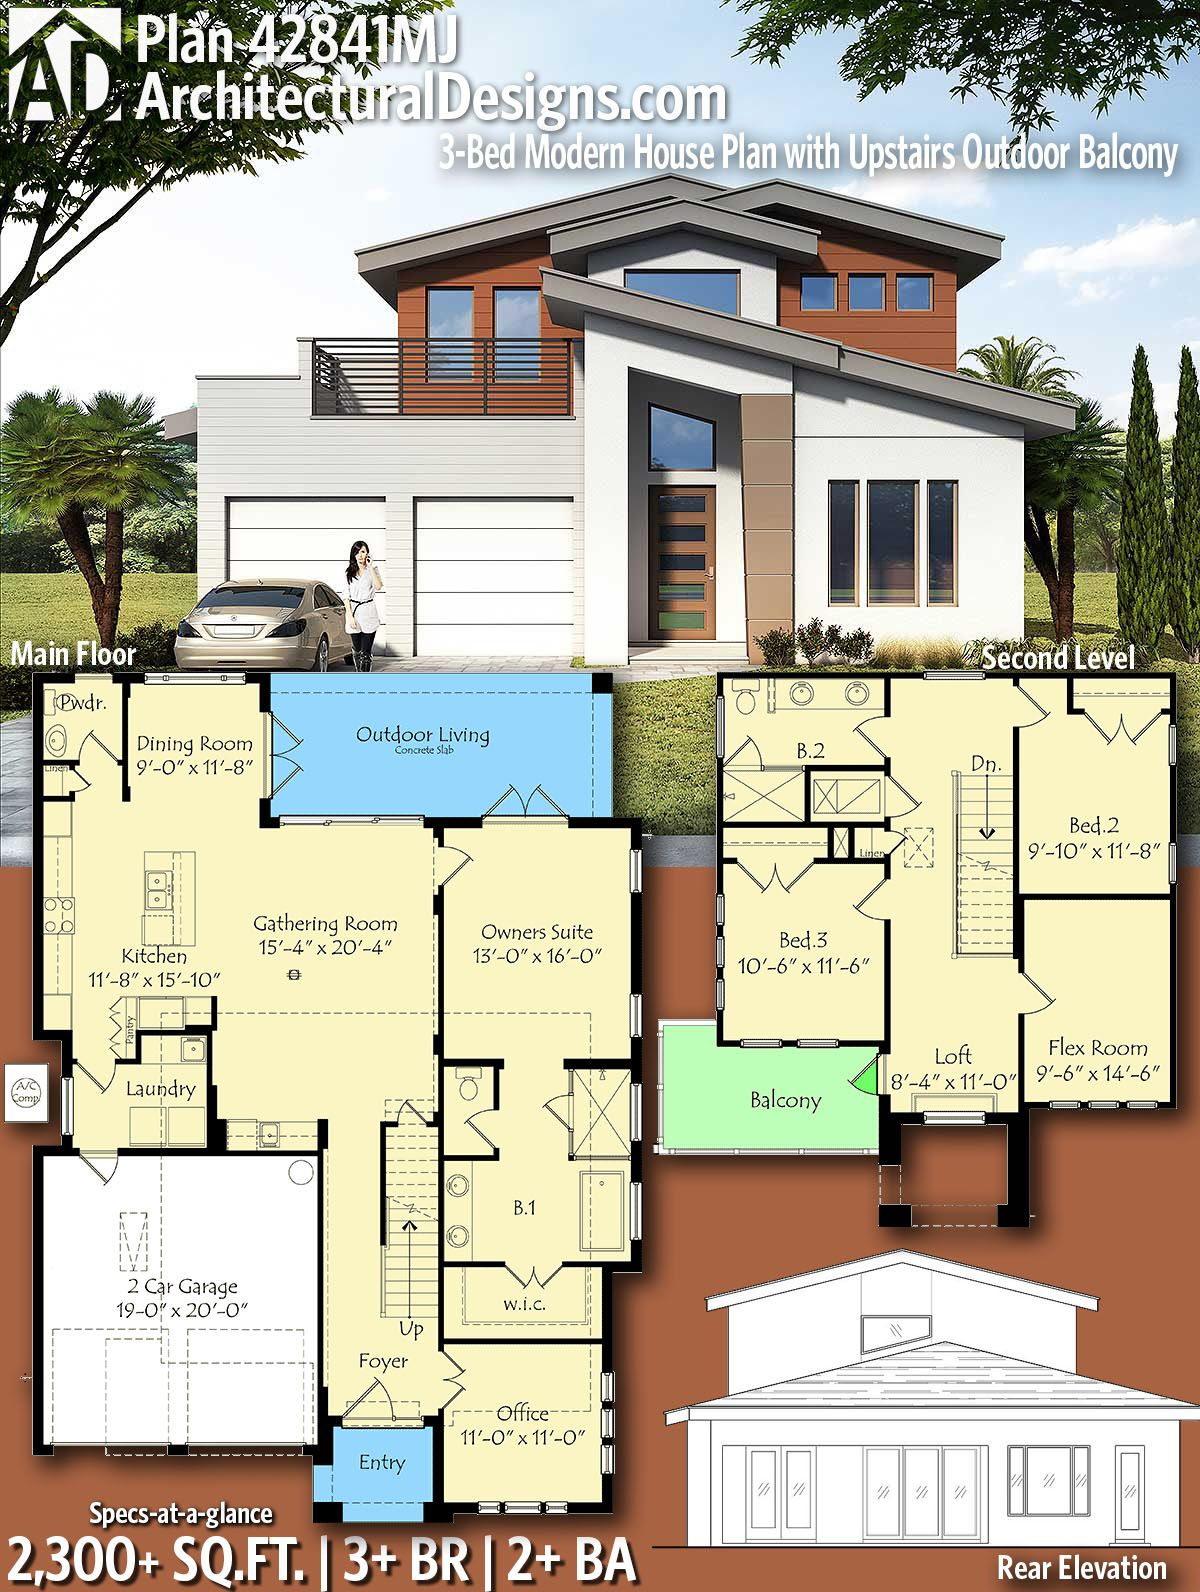 Plan 42841mj 3 Bed Modern House Plan With Upstairs Outdoor Balcony